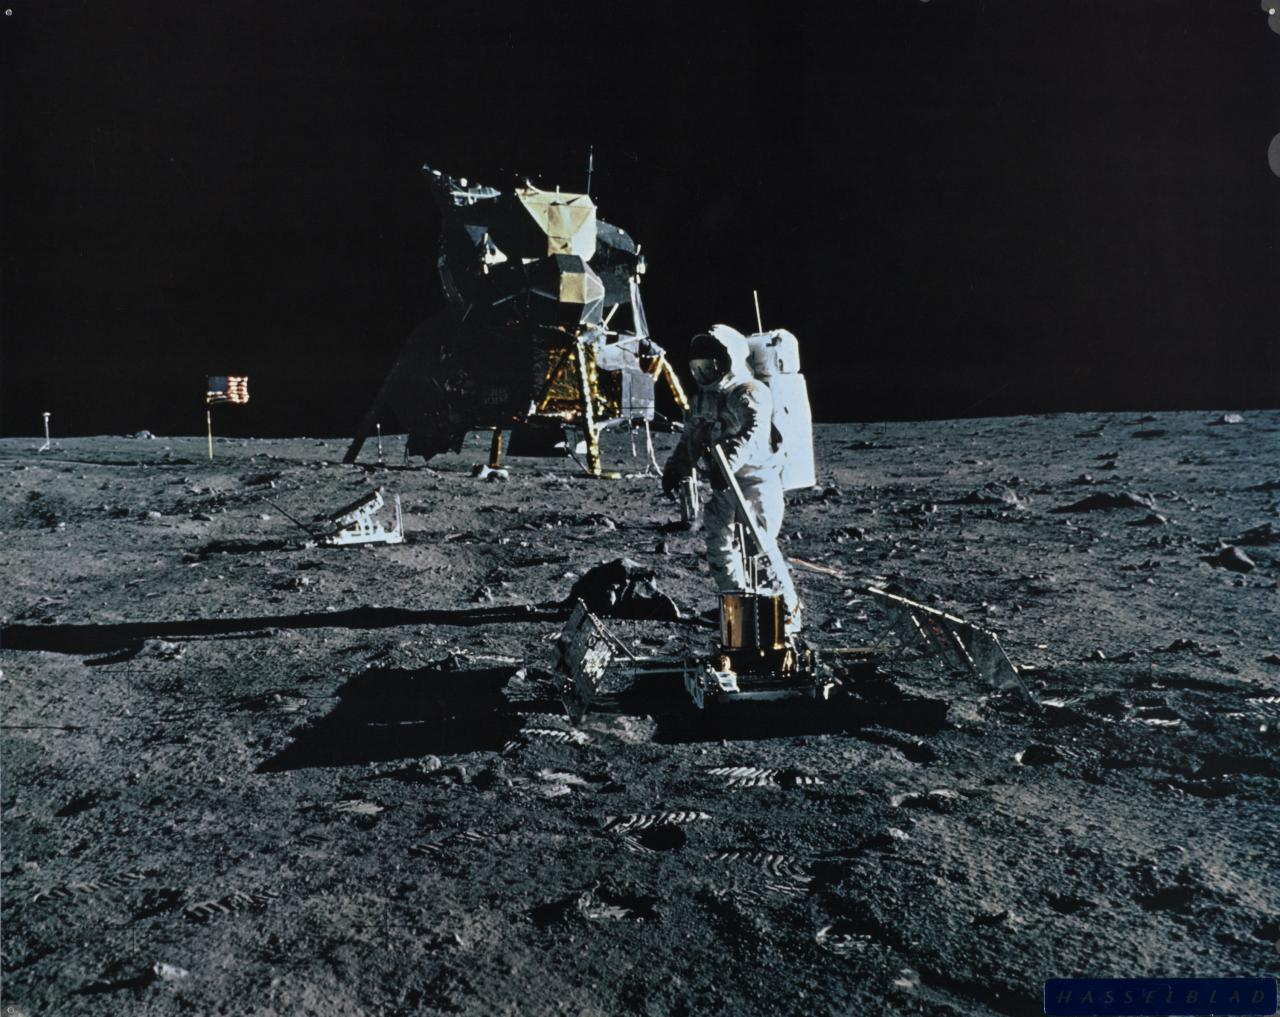 Aldrin setting out seismometer near module, U.S.A. flag in background